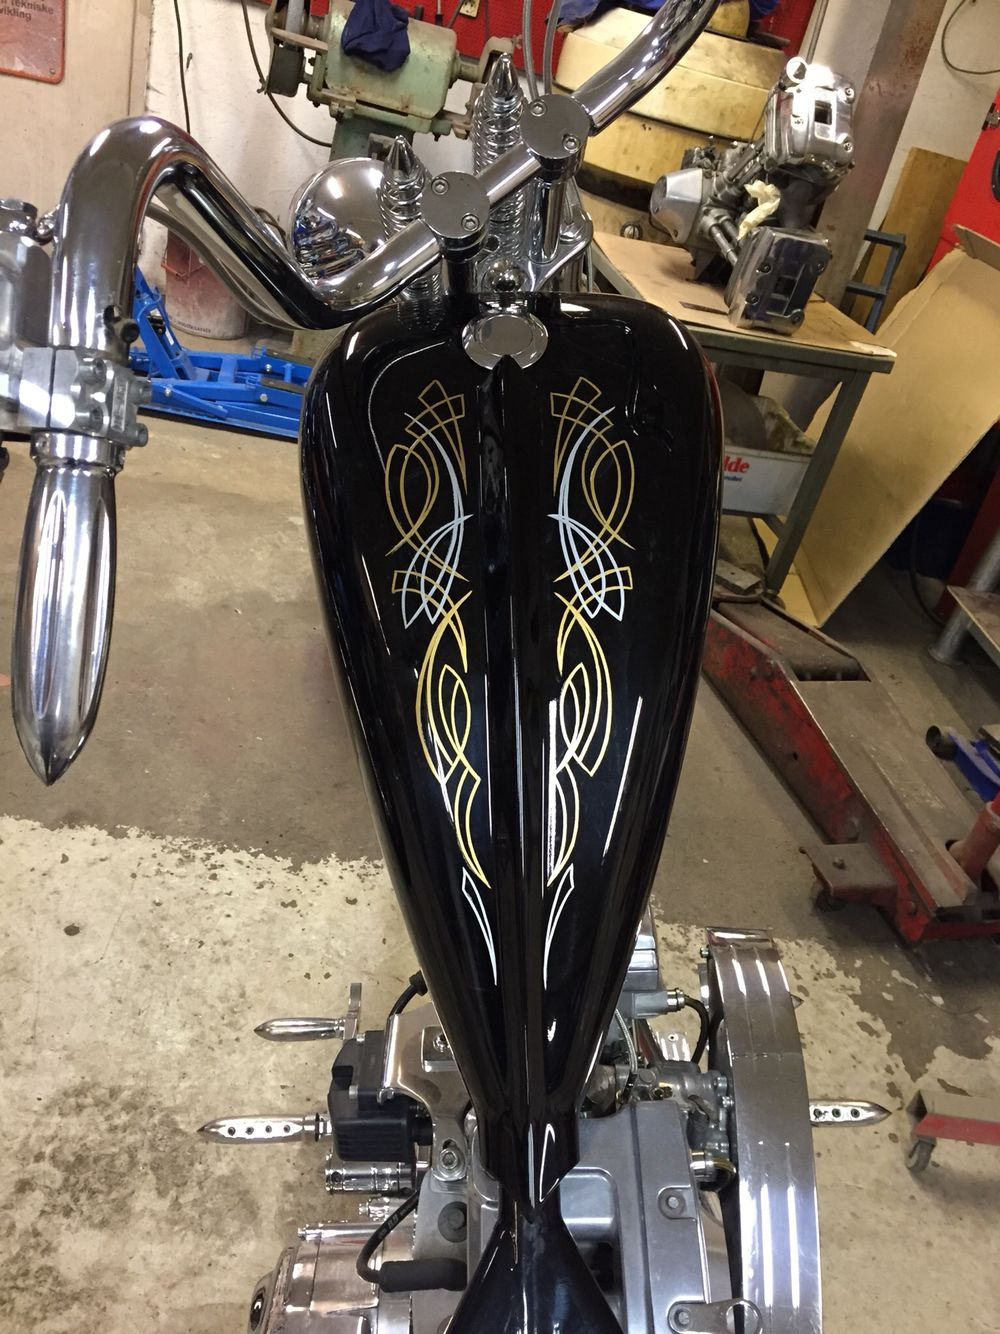 Chopper pinstriping springer kustom custom paint 1-shot 276ccm Harley Davidson